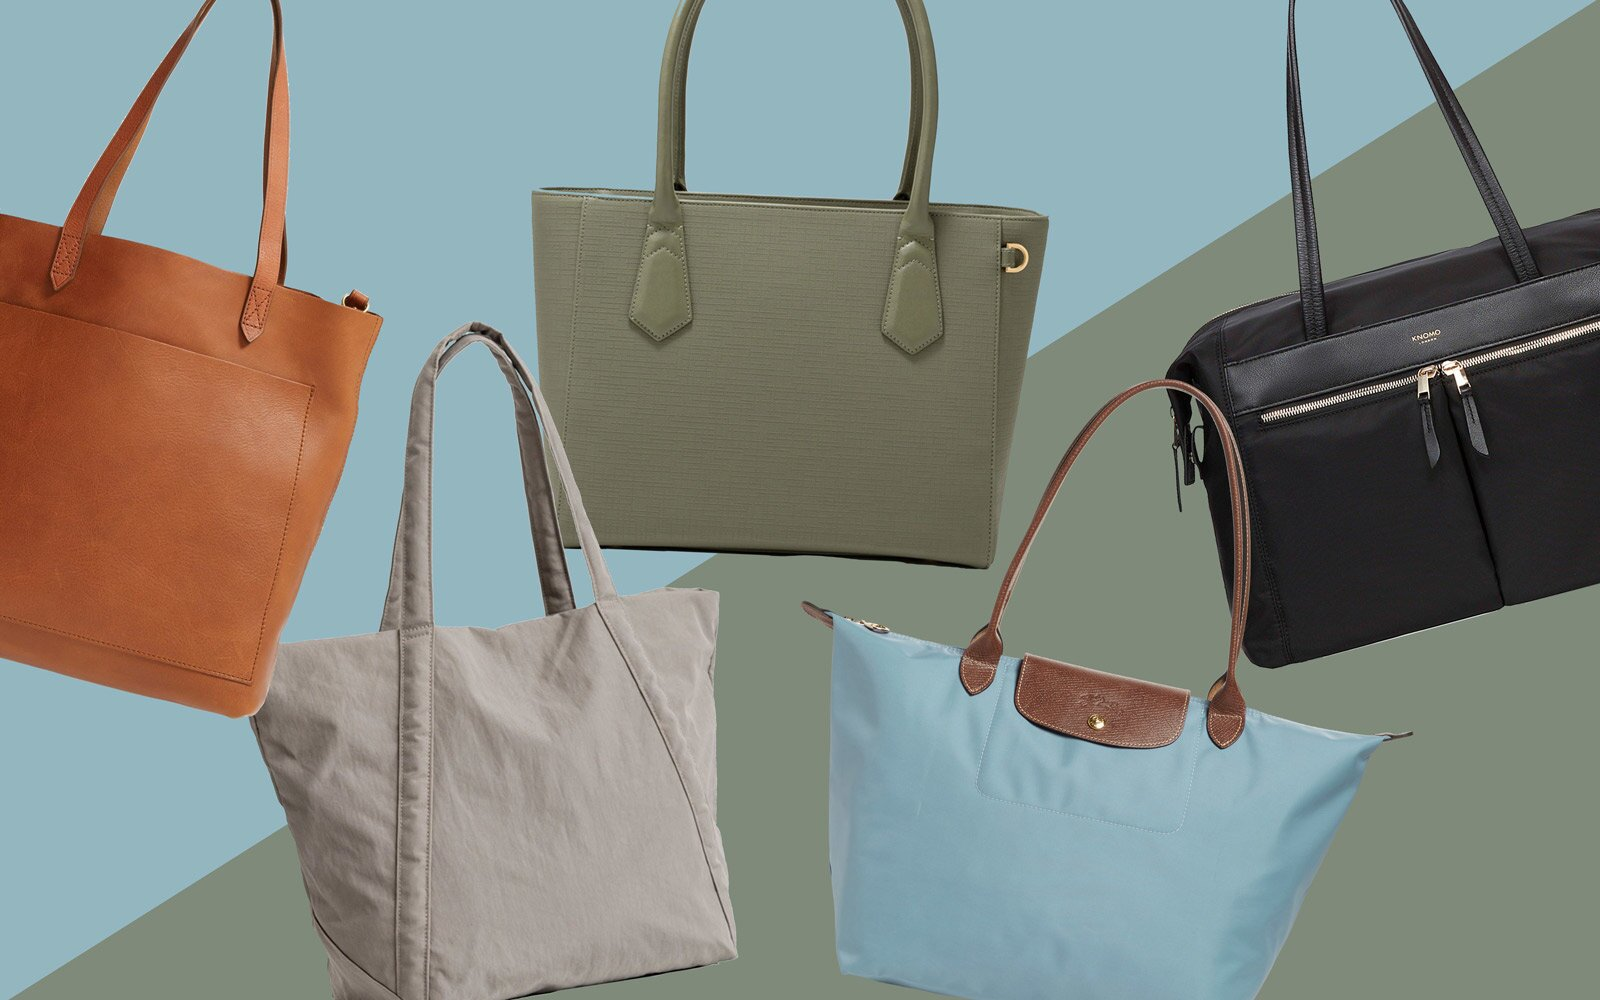 6c0d235a661b5 The 15 Best Tote Bags for All Your Travel Needs